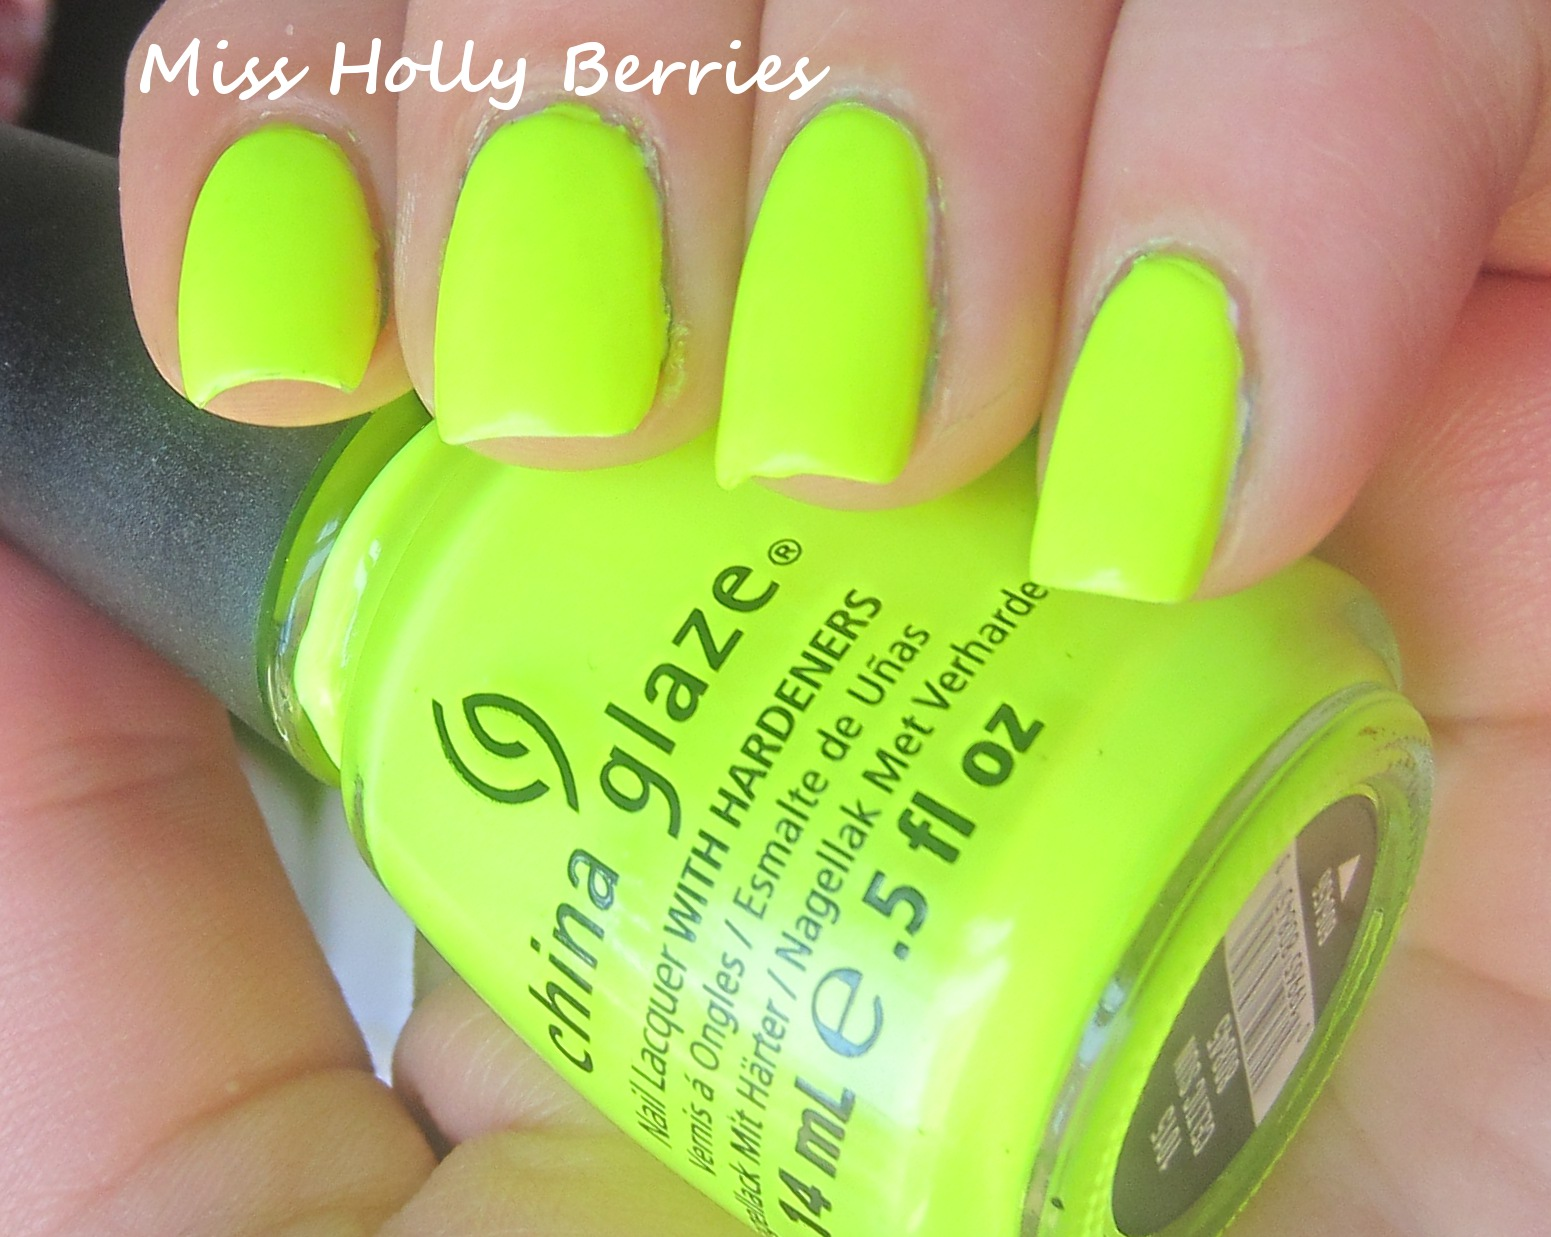 China glaze celtic sun misshollyberries img7104 nvjuhfo Gallery